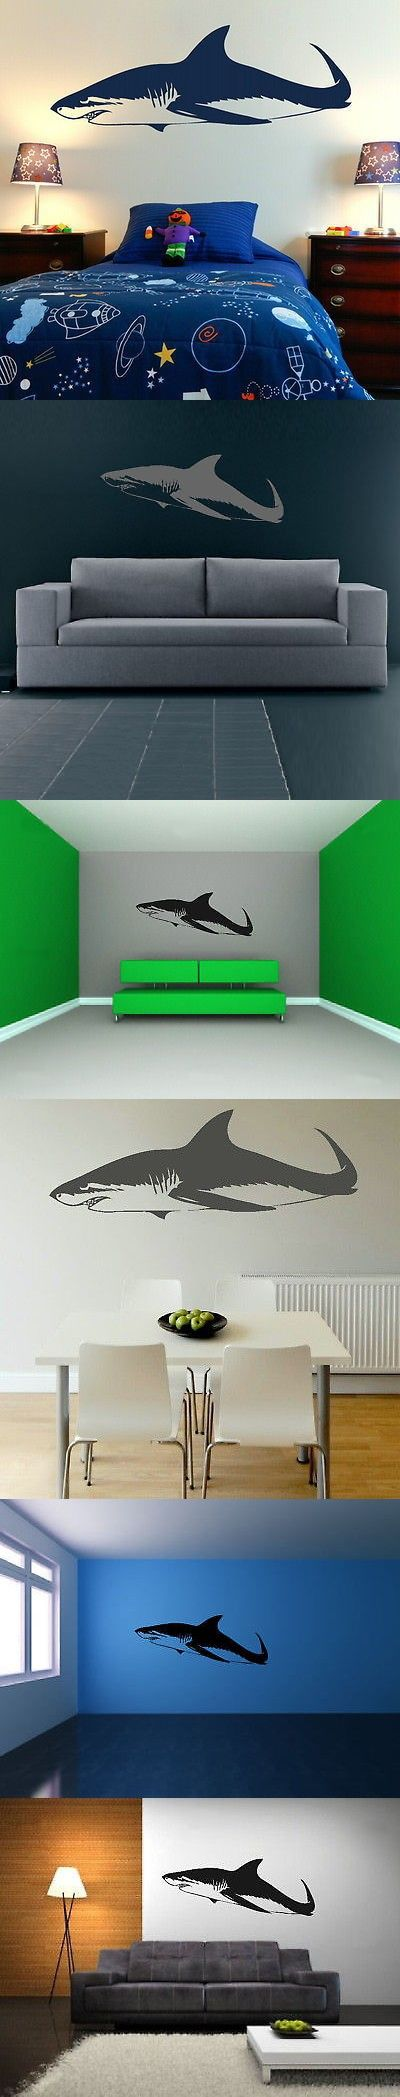 25 unique shark fish ideas on pinterest shark week 2016 ocean great white shark fish wall decal removable vinyl fish wall stickers home decor 1099 amipublicfo Choice Image